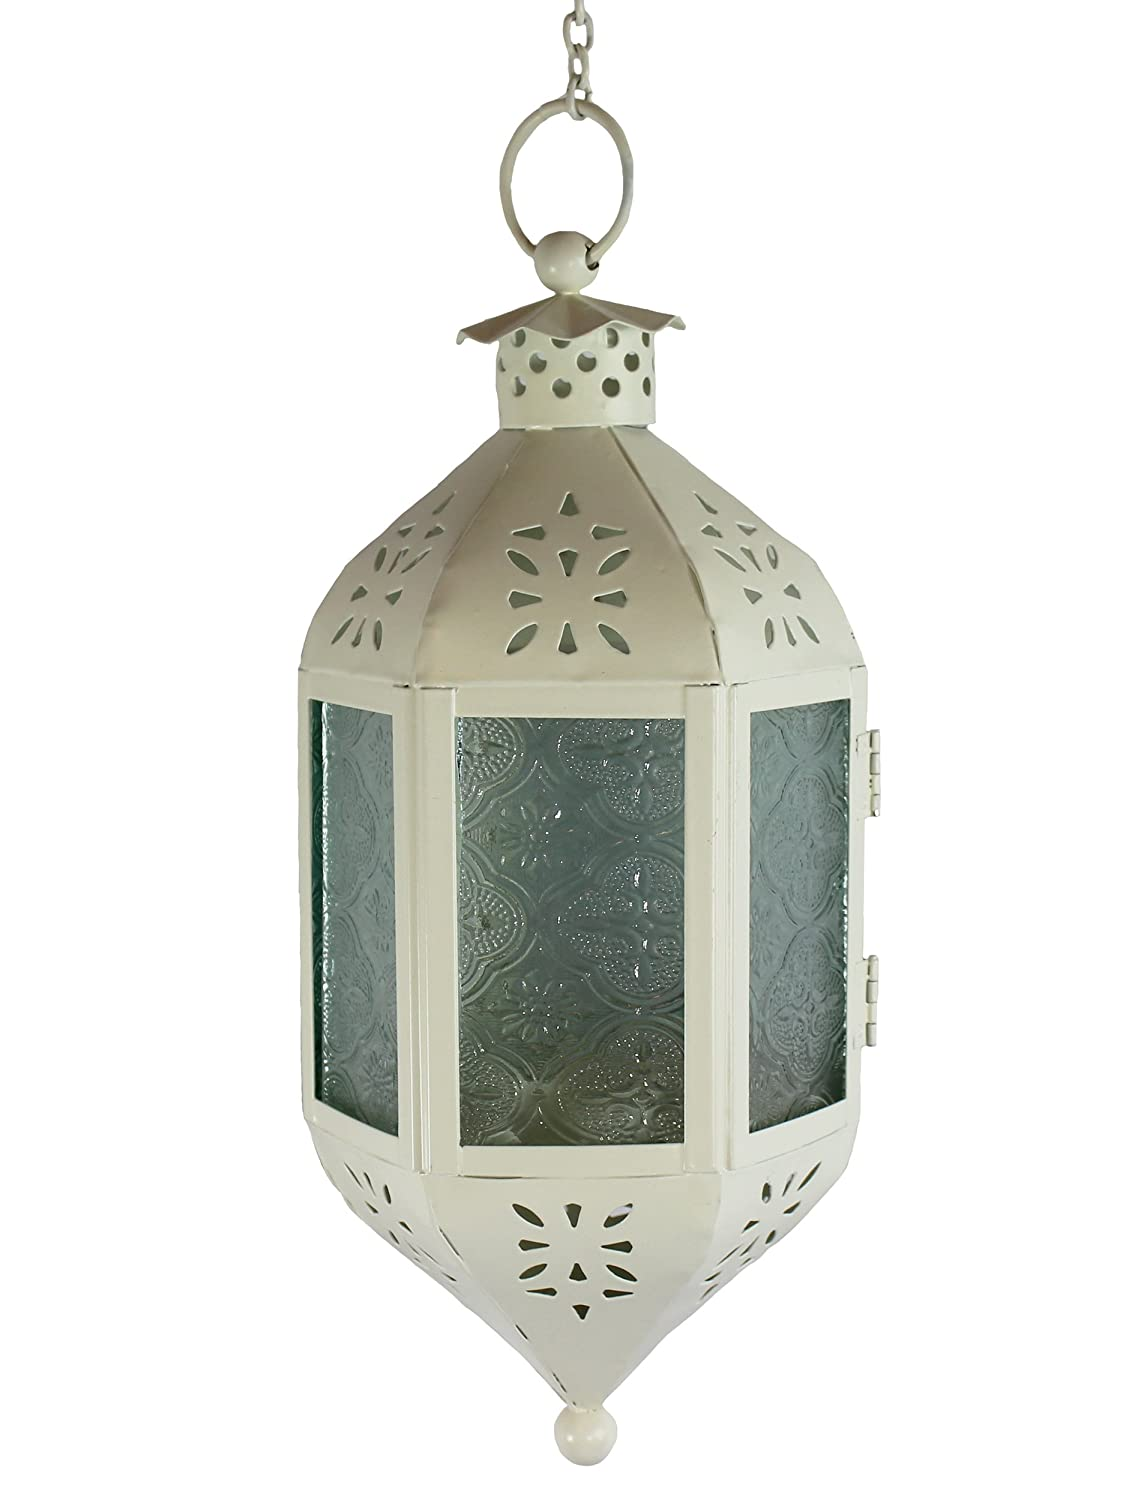 Amazon.com: Cream Hanging Moroccan Candle Lantern with Chain: Home & Kitchen